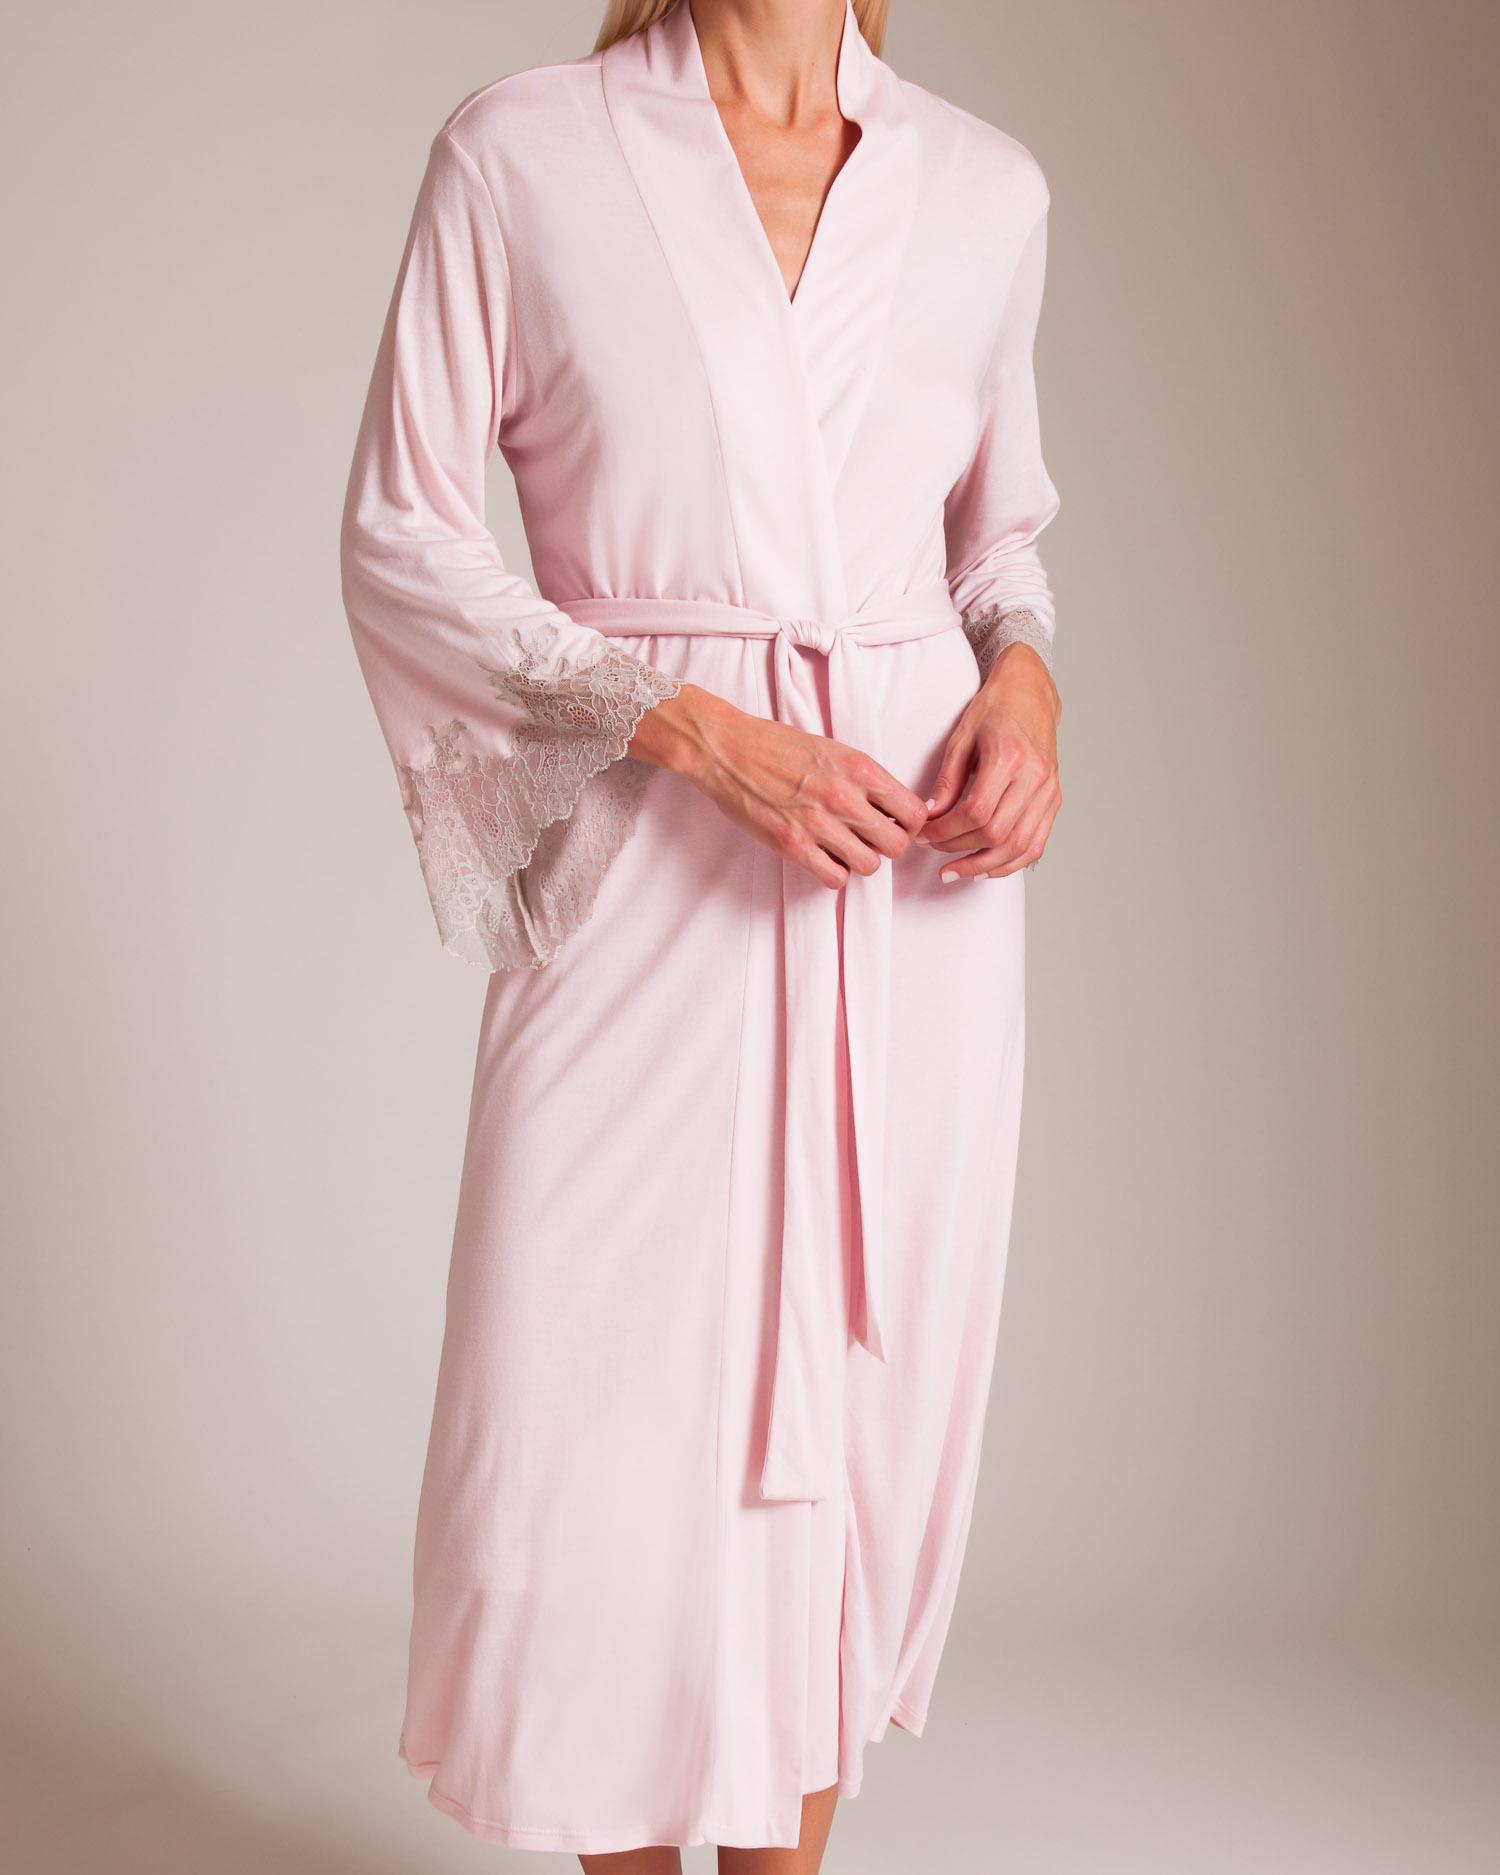 2257110c6c Natori Luxe Shangri-la Robe in Pink - Save 5.303030303030297% - Lyst